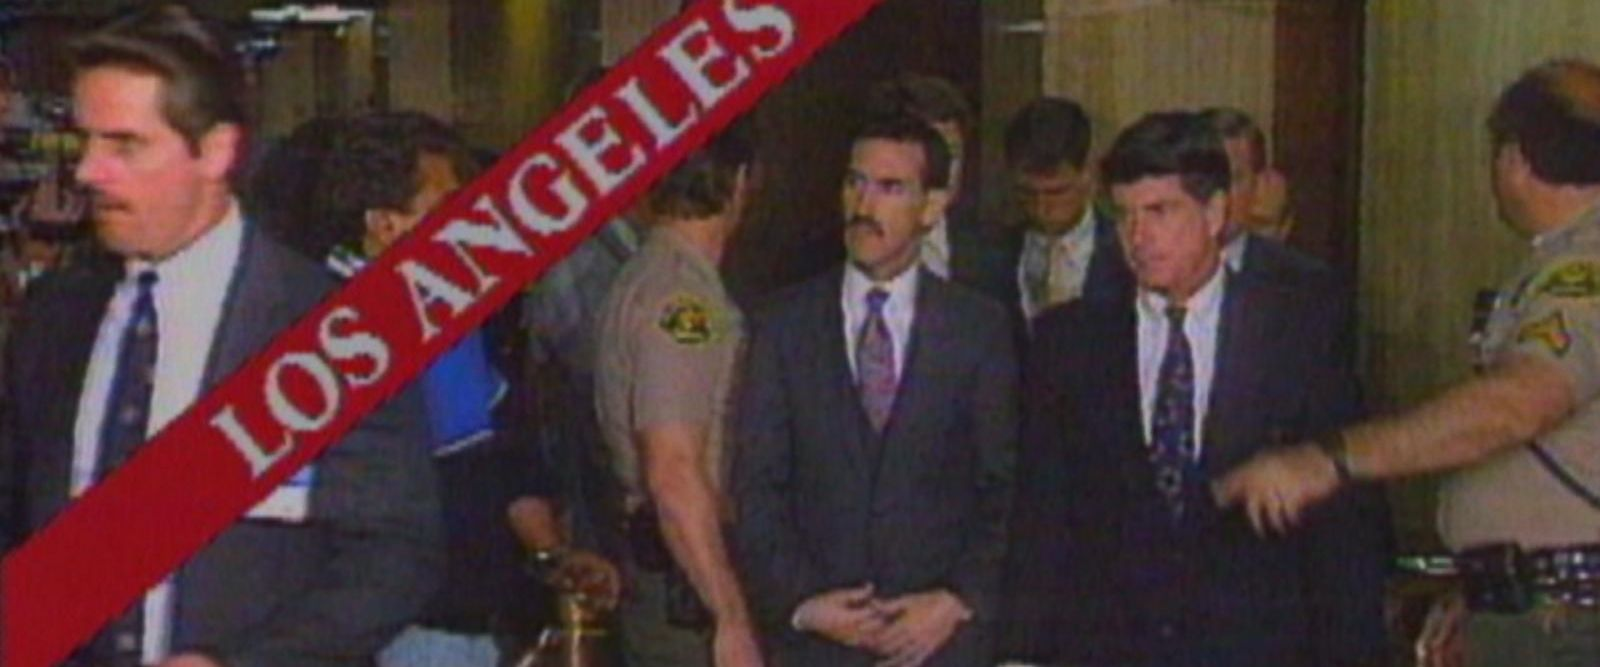 VIDEO: March 15, 1991: 'World News Tonight' - 4 LA police officers are indicted on assault charges